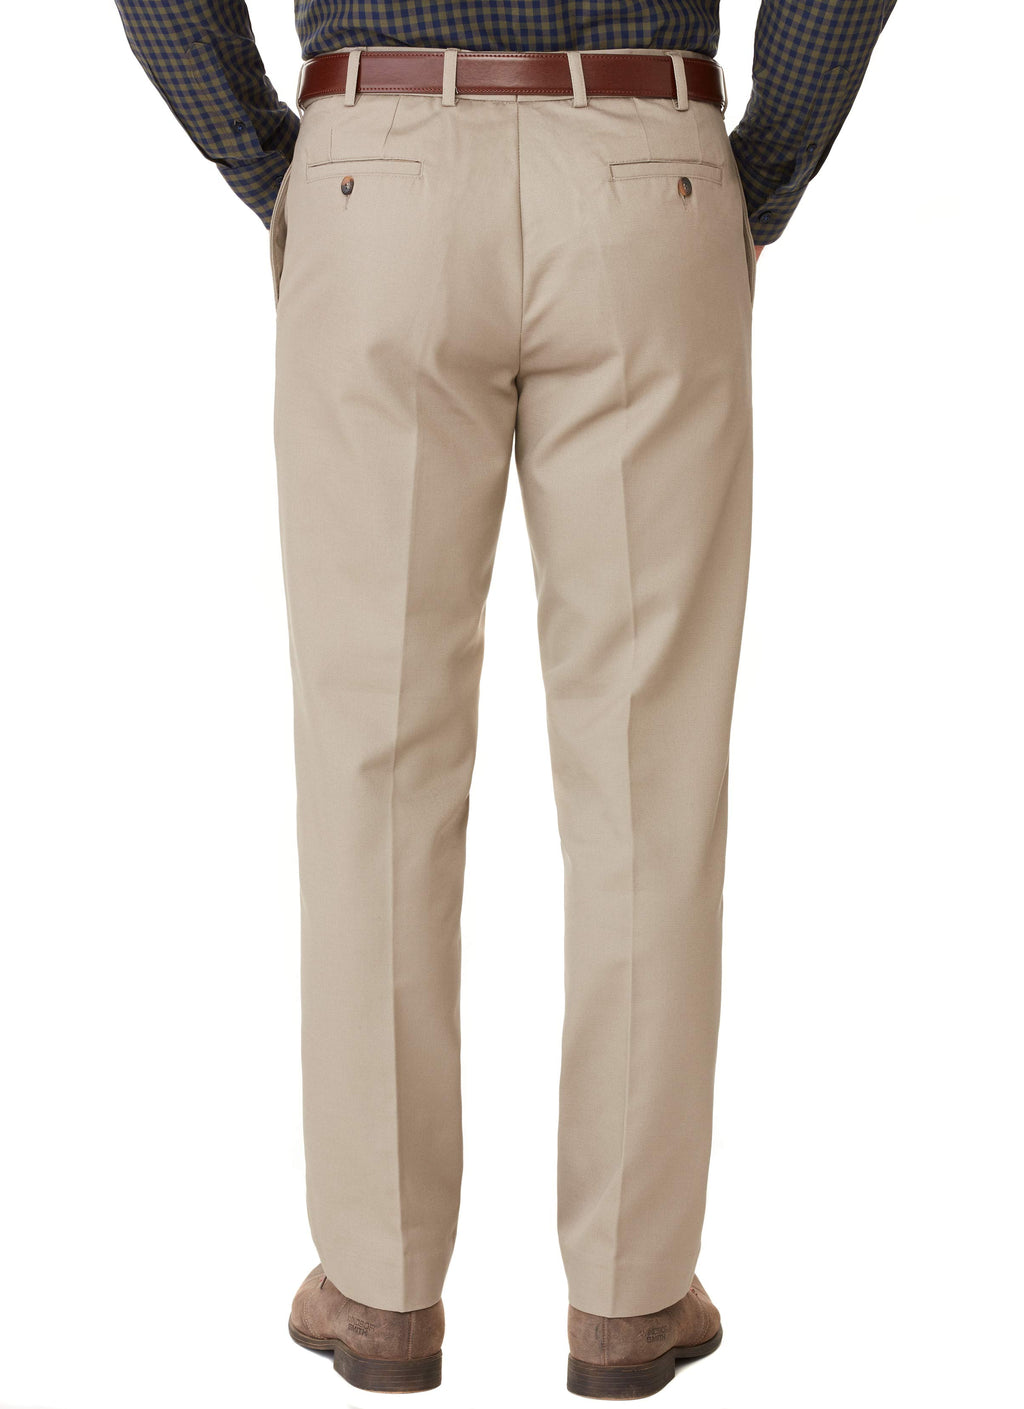 STANSBURY FLAT FRONT FLEXIWAIST TROUSER - BISCUIT